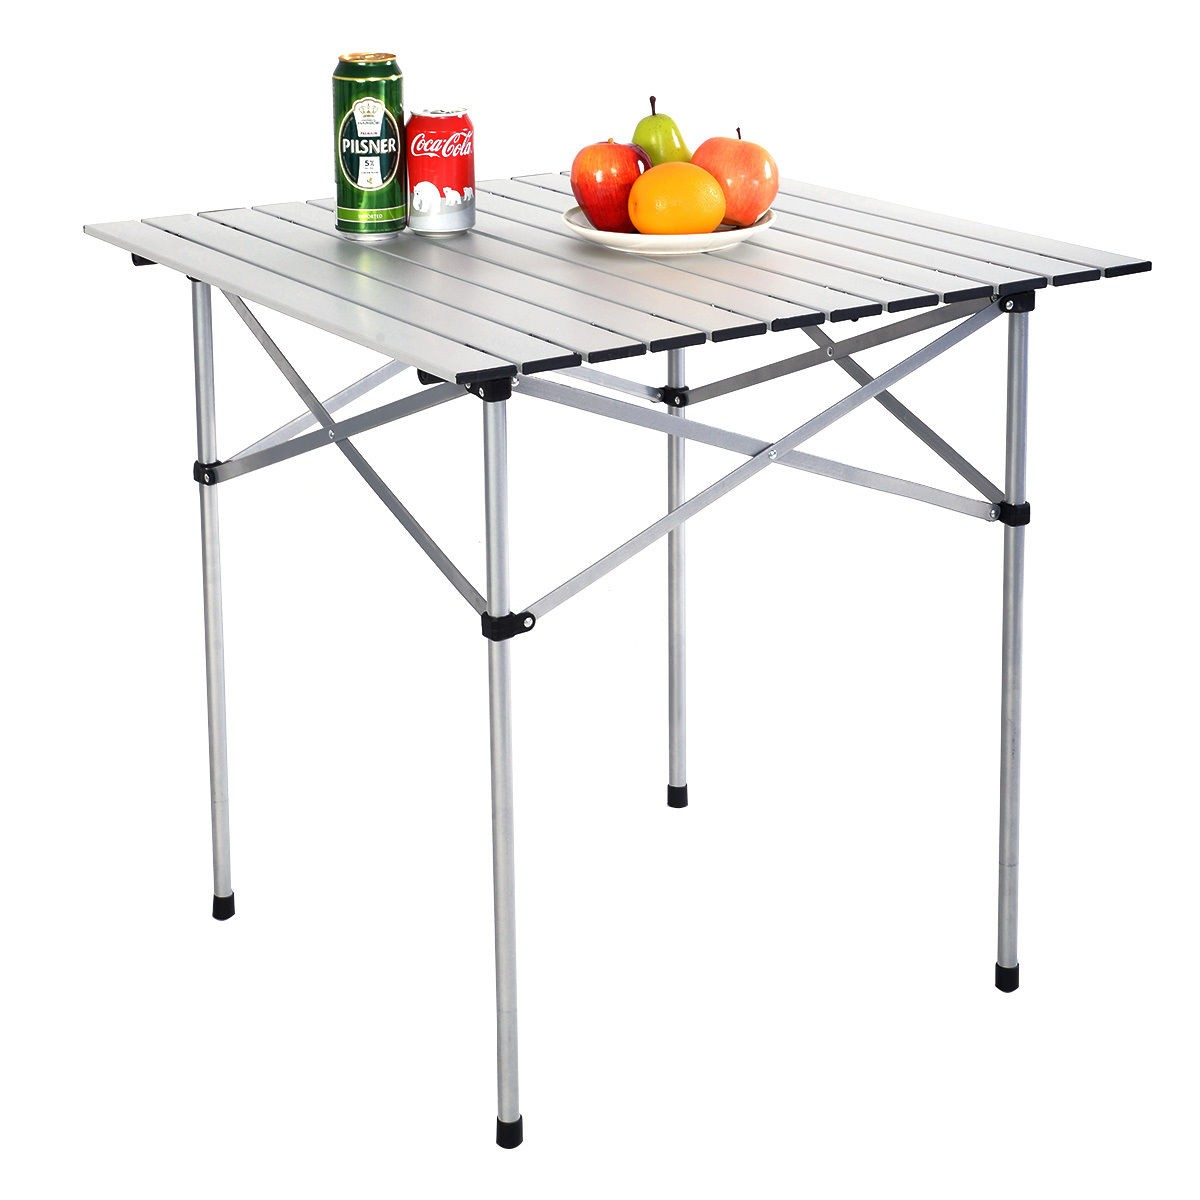 fold up picnic table portable aluminum roll up table folding camping outdoor 10414